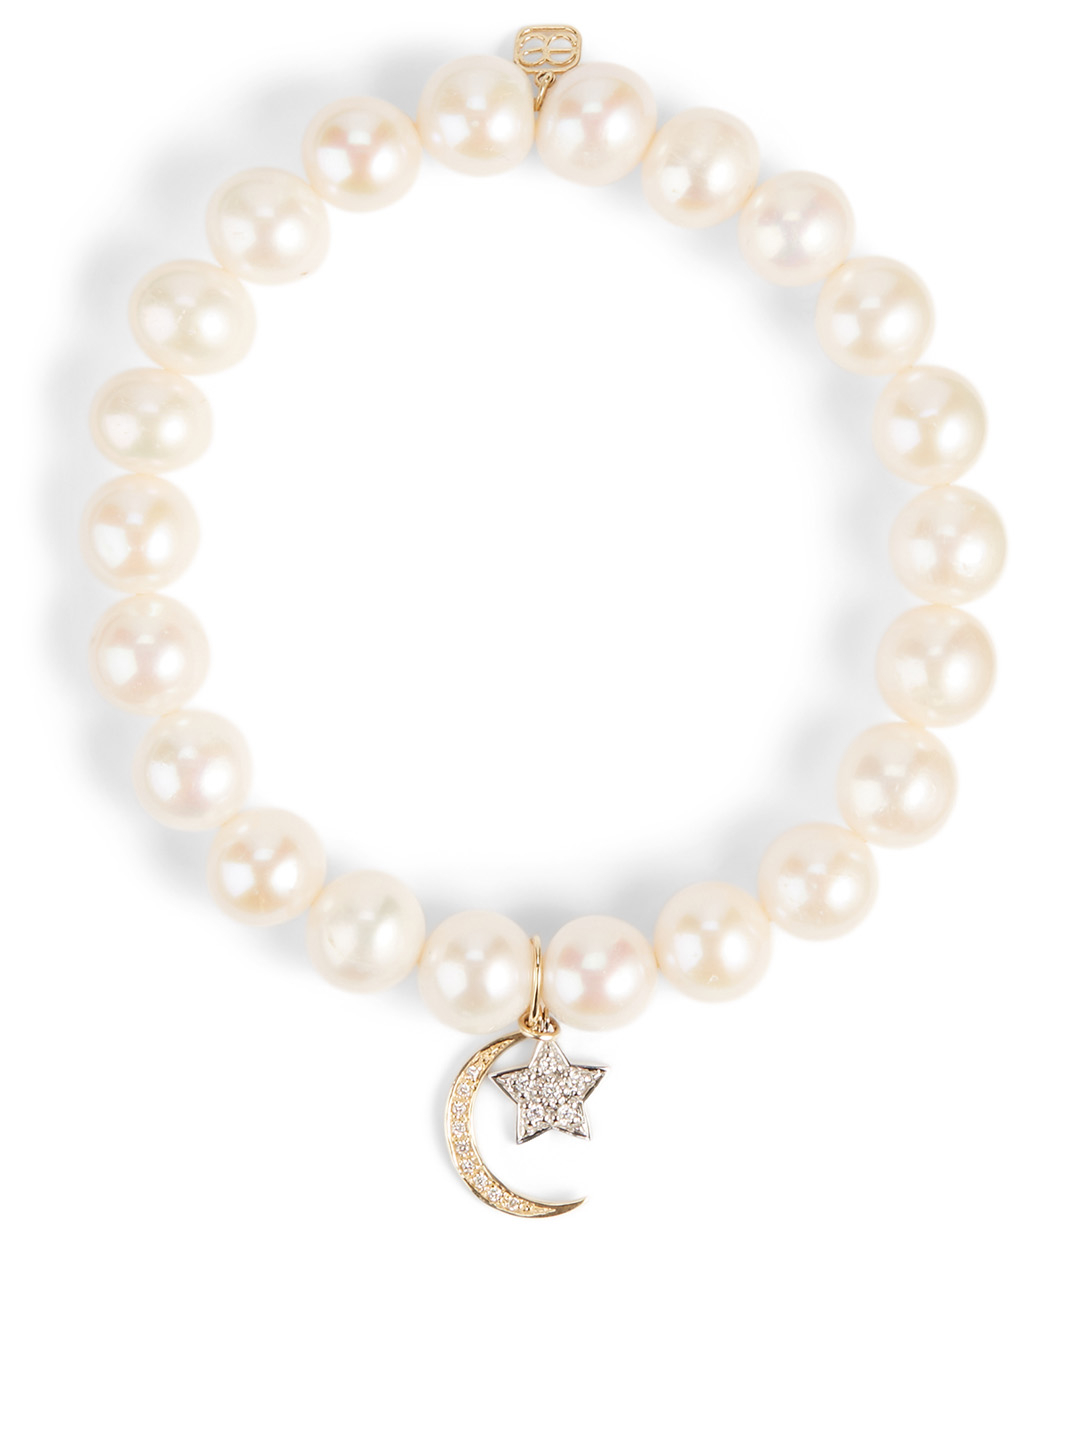 SYDNEY EVAN Pearl Bracelet With 18K Yellow And White Gold Diamond Star And Moon Charms Women's Metallic